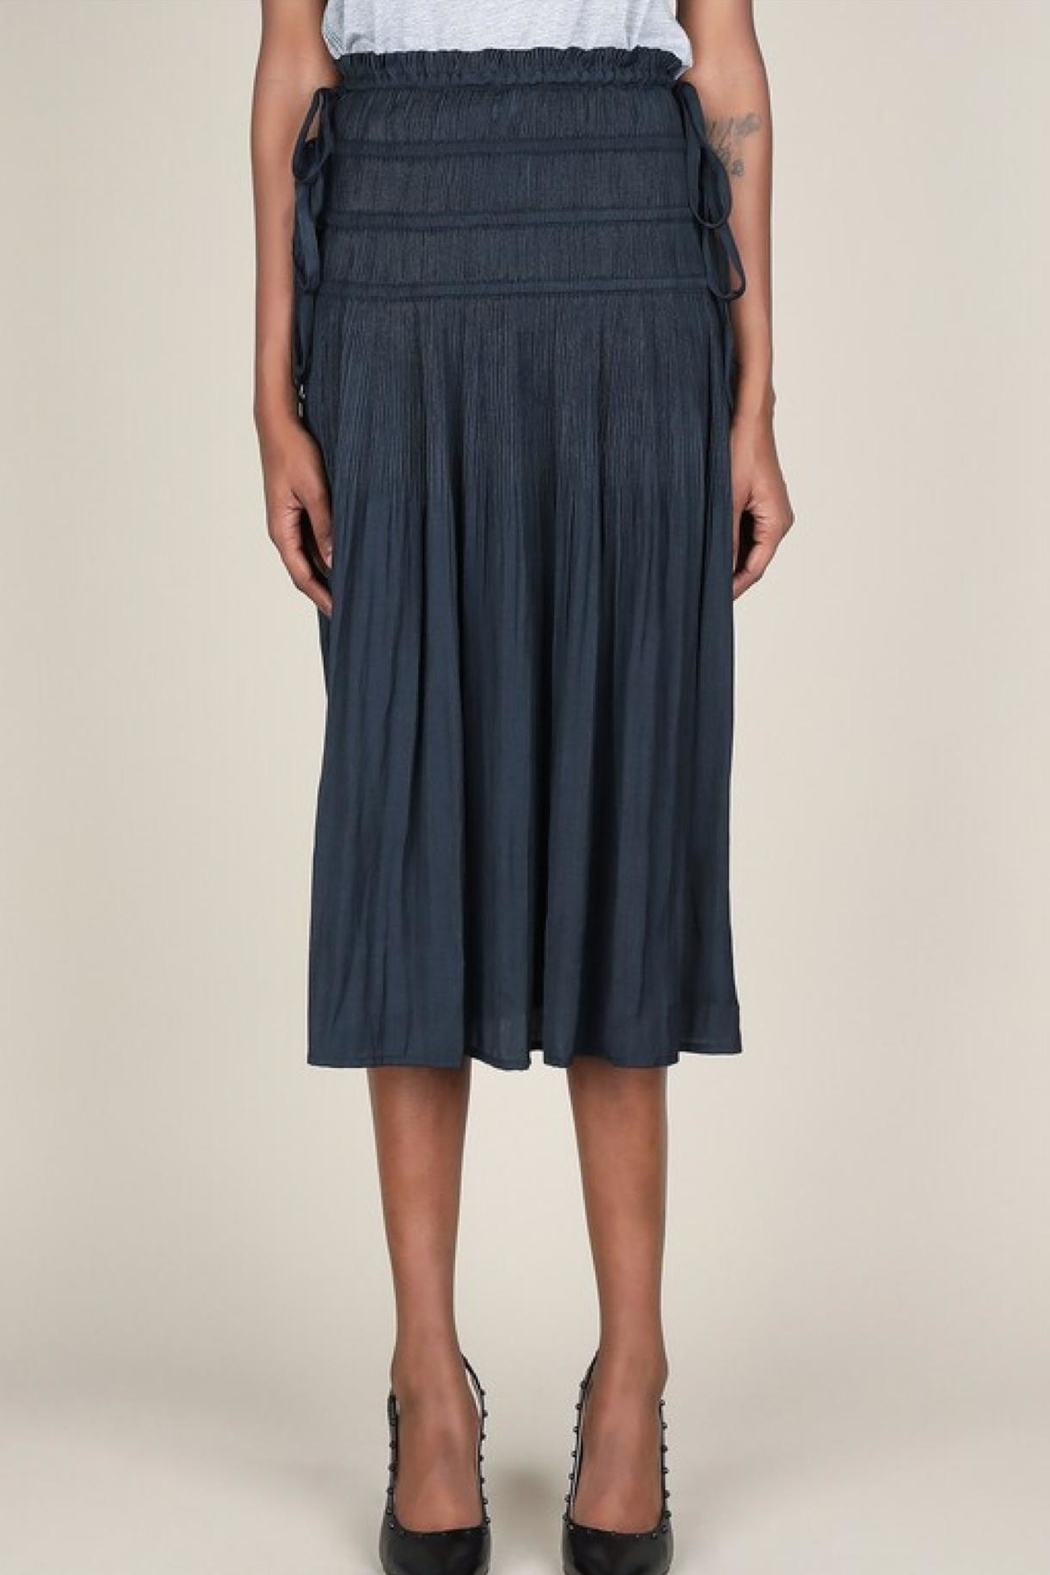 Current Air Pleated Midi Skirt - Front Full Image